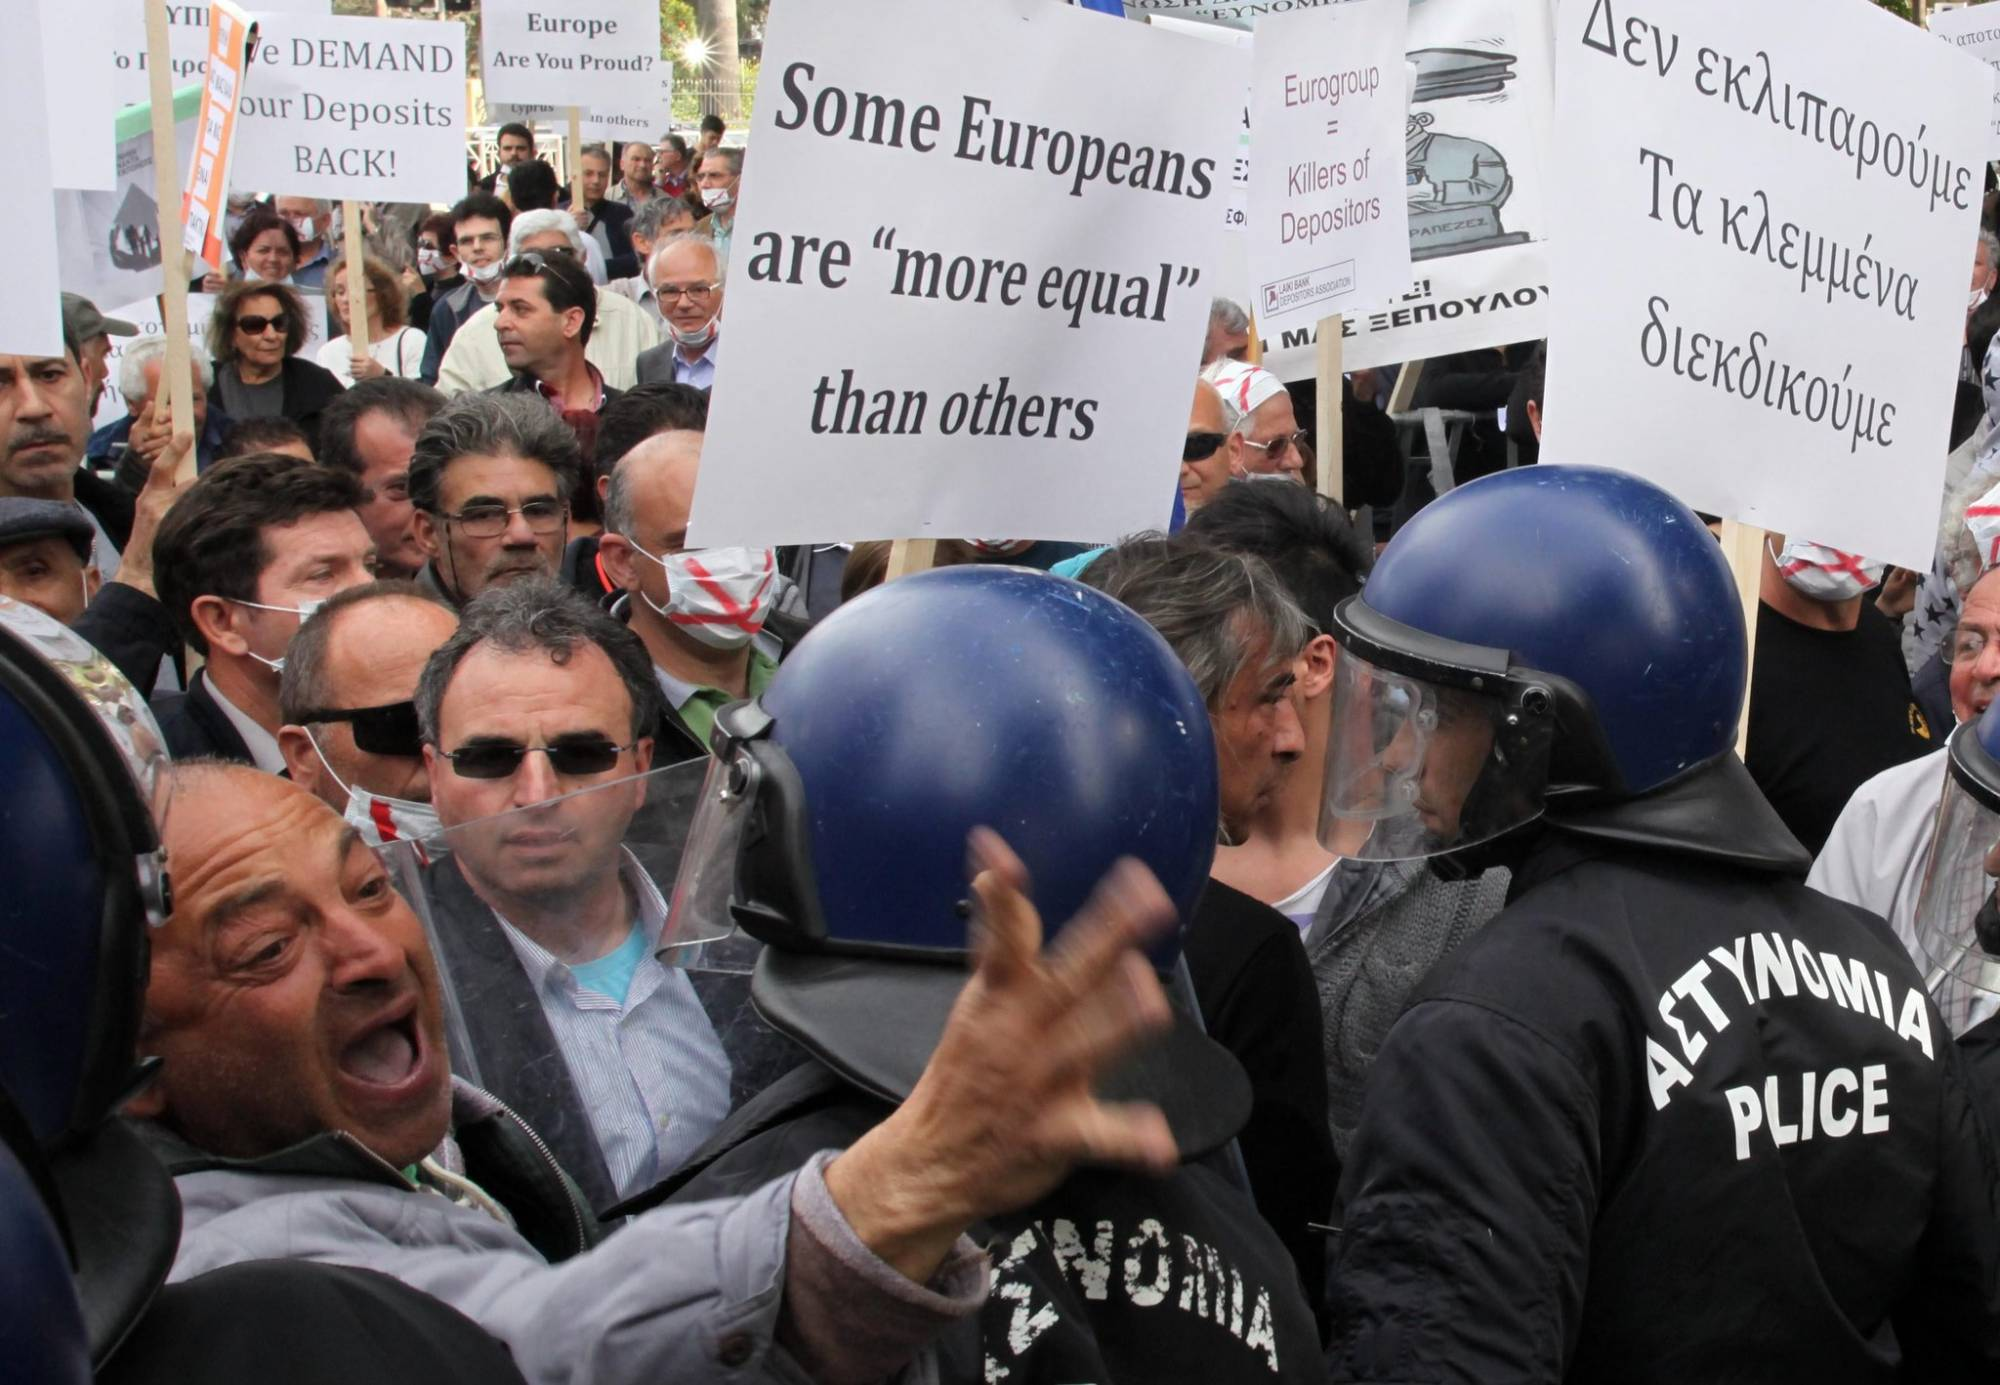 Depositors in the now-defunct Laiki Bank, which closed in Cyprus's 2013 financial crisis, protested  outside Parliament in Nicosia in March | Photo: Katia Christodoulou, uropean Pressphoto Agency